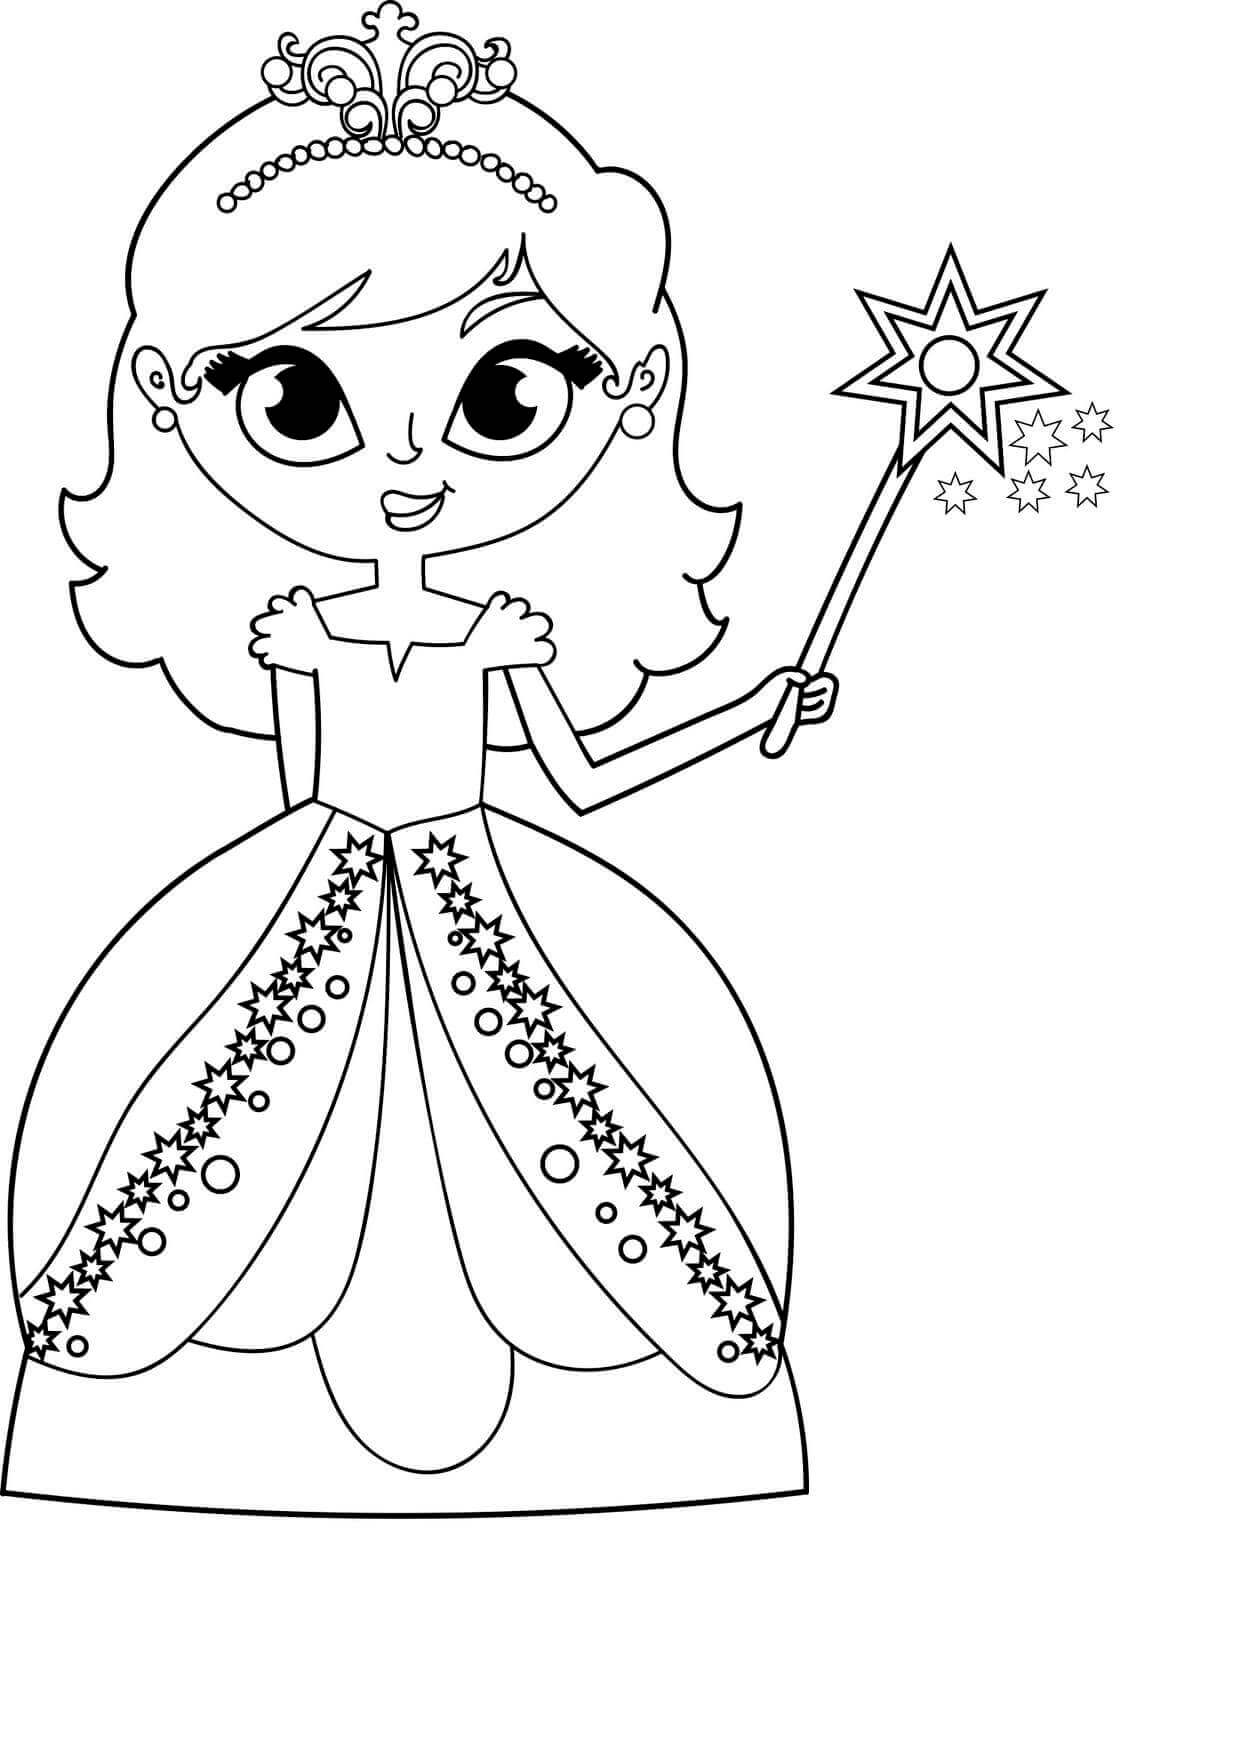 colouring in pictures for girls free printable coloring pages for girls in pictures girls colouring for